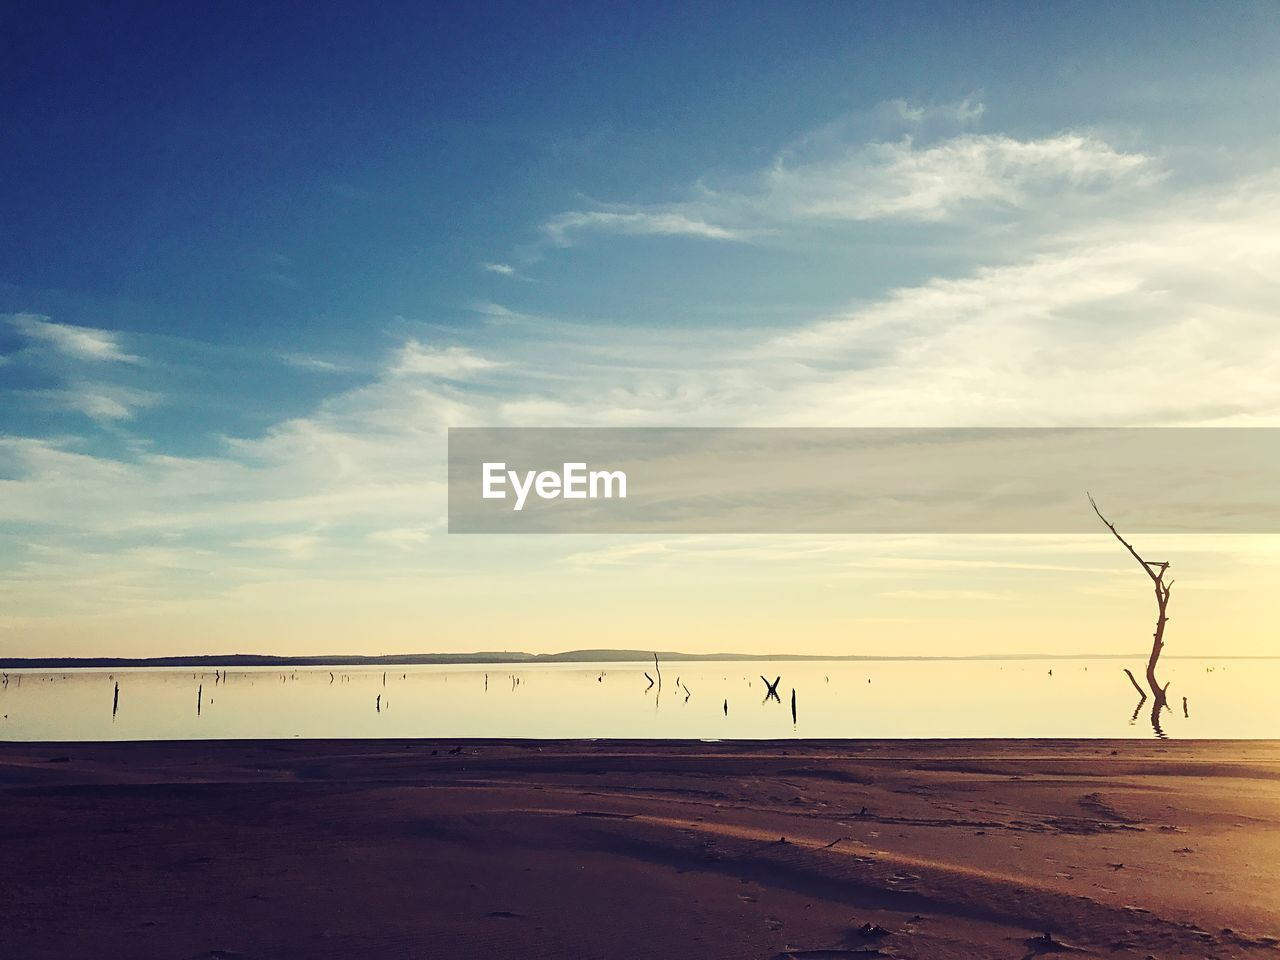 sky, cloud - sky, scenics - nature, nature, tranquil scene, beauty in nature, tranquility, environment, land, no people, sunset, outdoors, wind turbine, landscape, turbine, fuel and power generation, transportation, non-urban scene, beach, connection